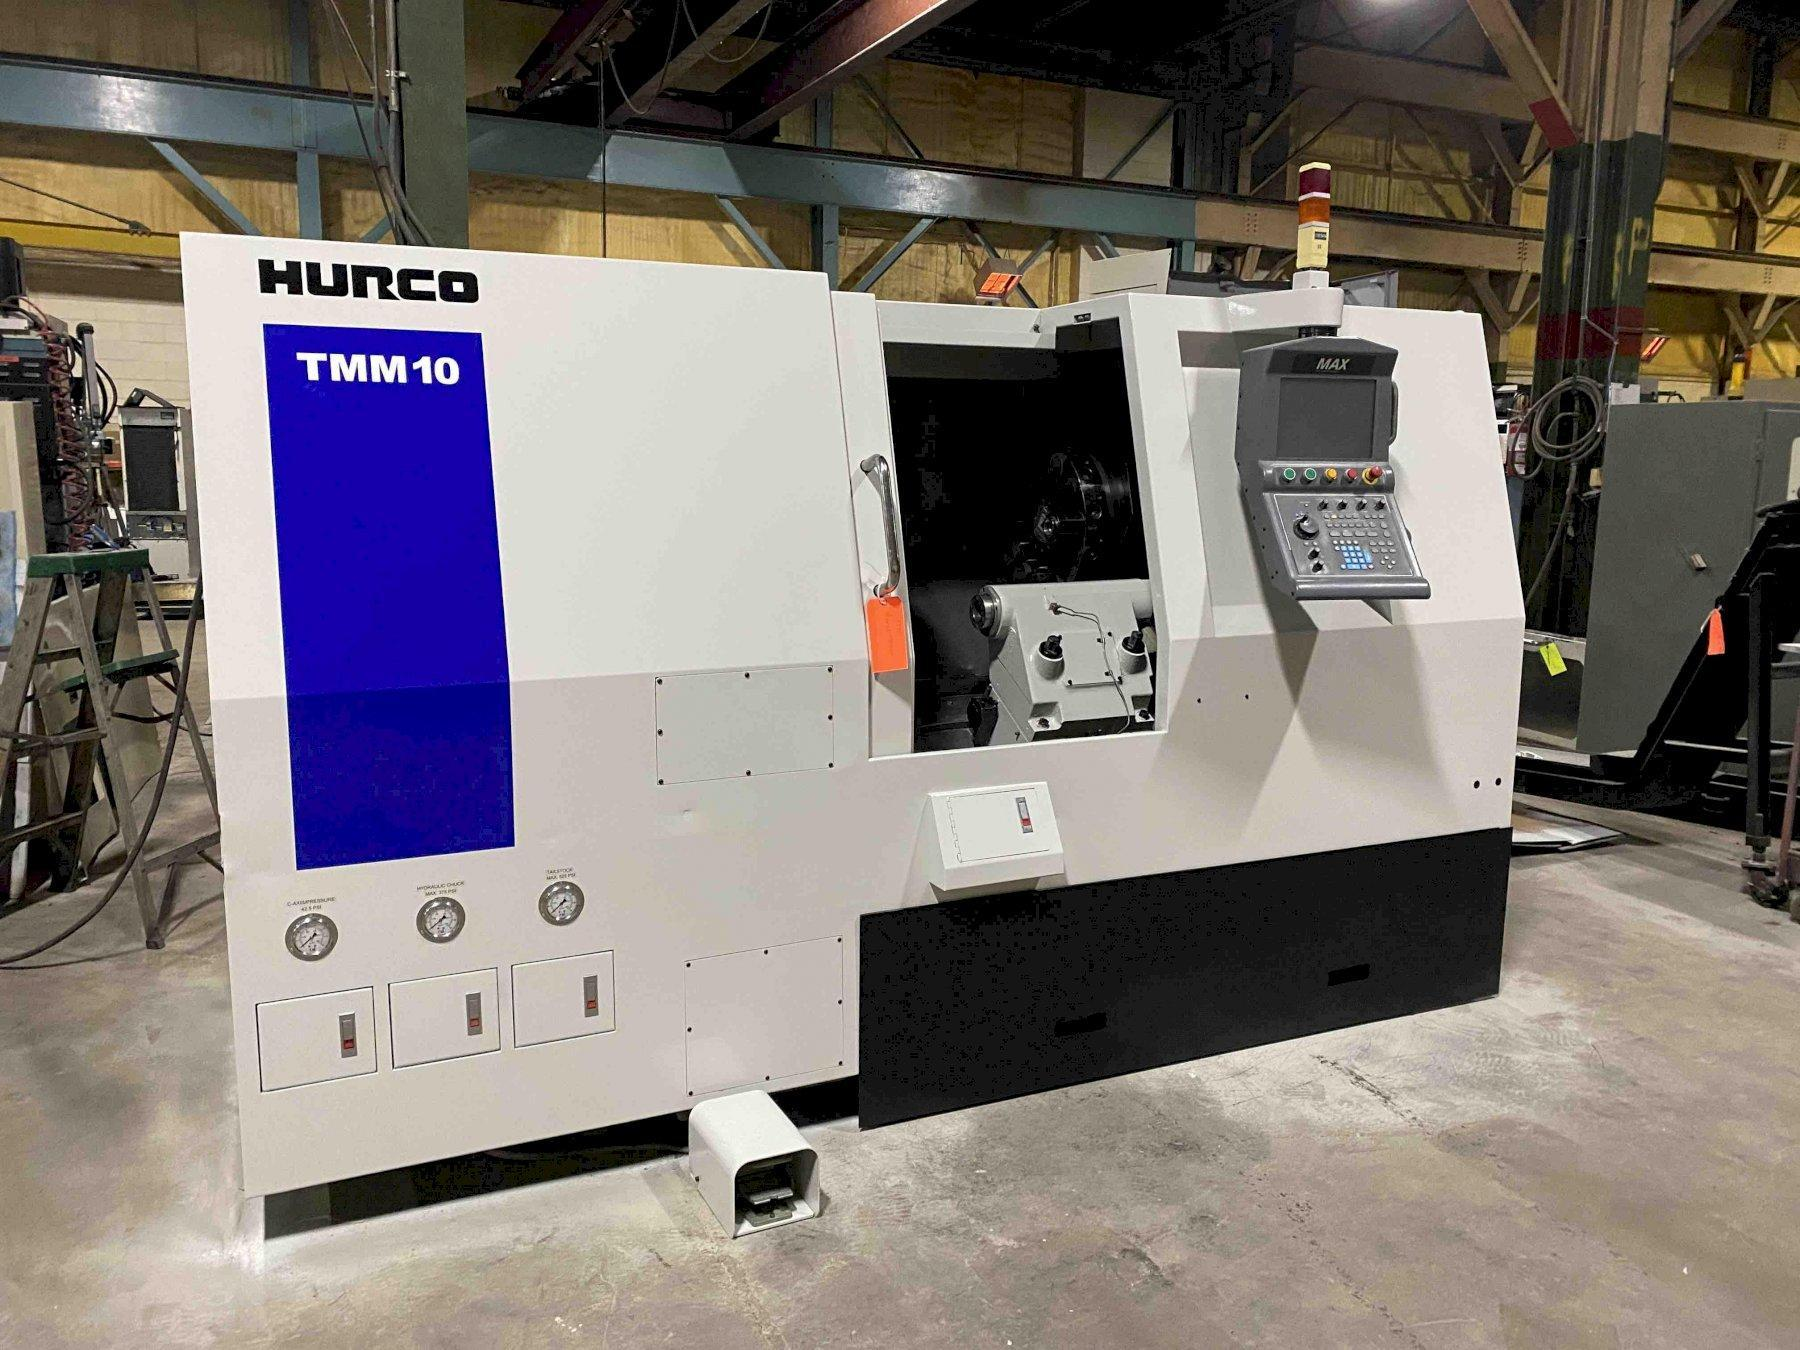 "Hurco TMM-10 CNC Lathe, MAX Control, 8"" Chuck, 23.5"" Swing, 28"" Centers, 3"" Bar Capacity, Milling, Parts Catcher, Chip Conveyor,  Tool Probe, 2010"